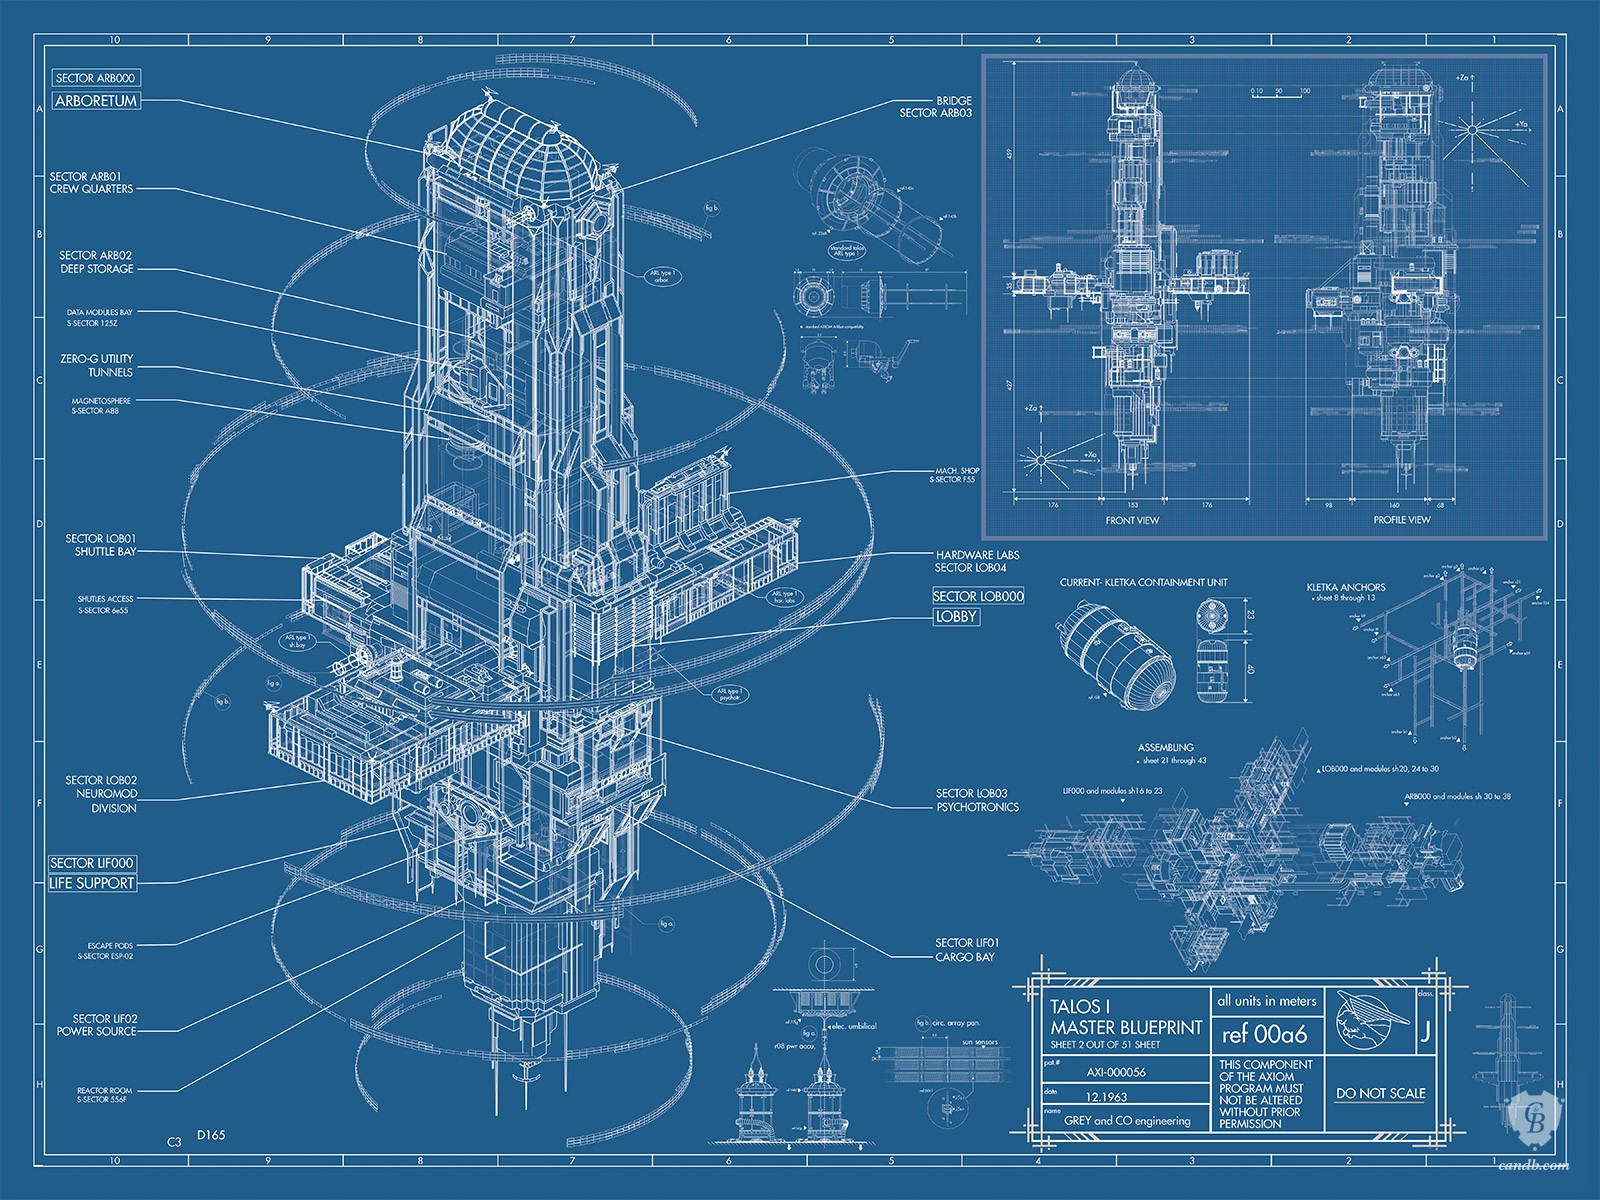 Artwork talos i master blueprint prey arkane studios for Where to print blueprints